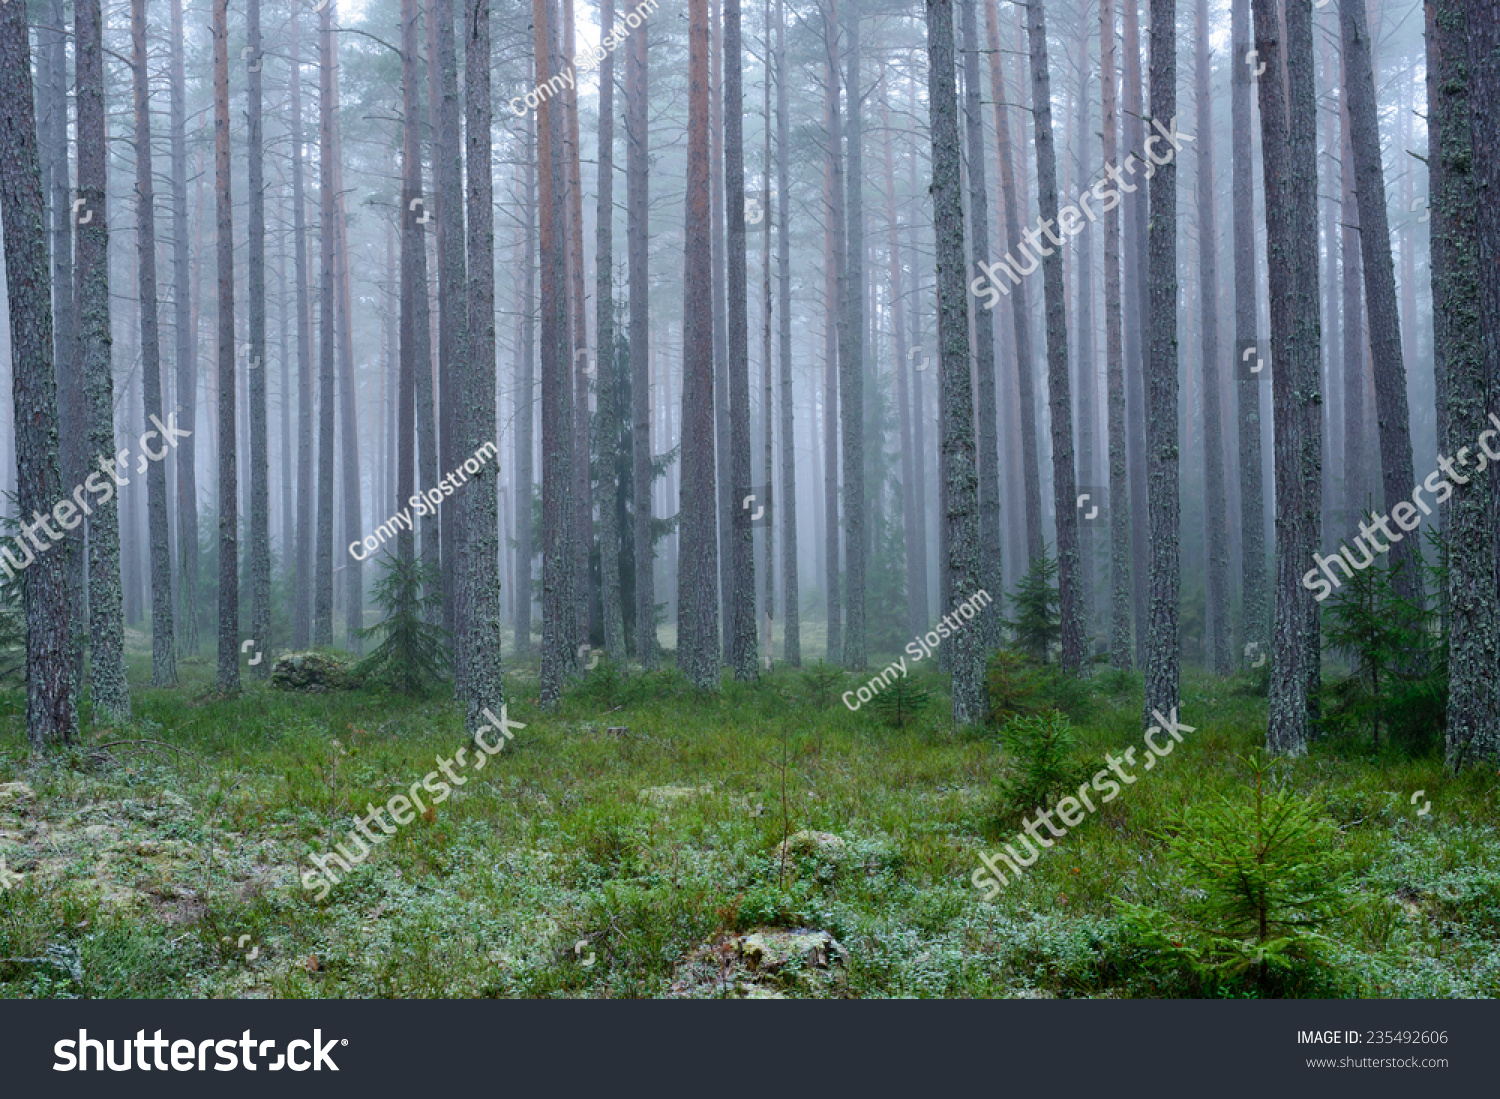 mysterious forest in winter - photo #4